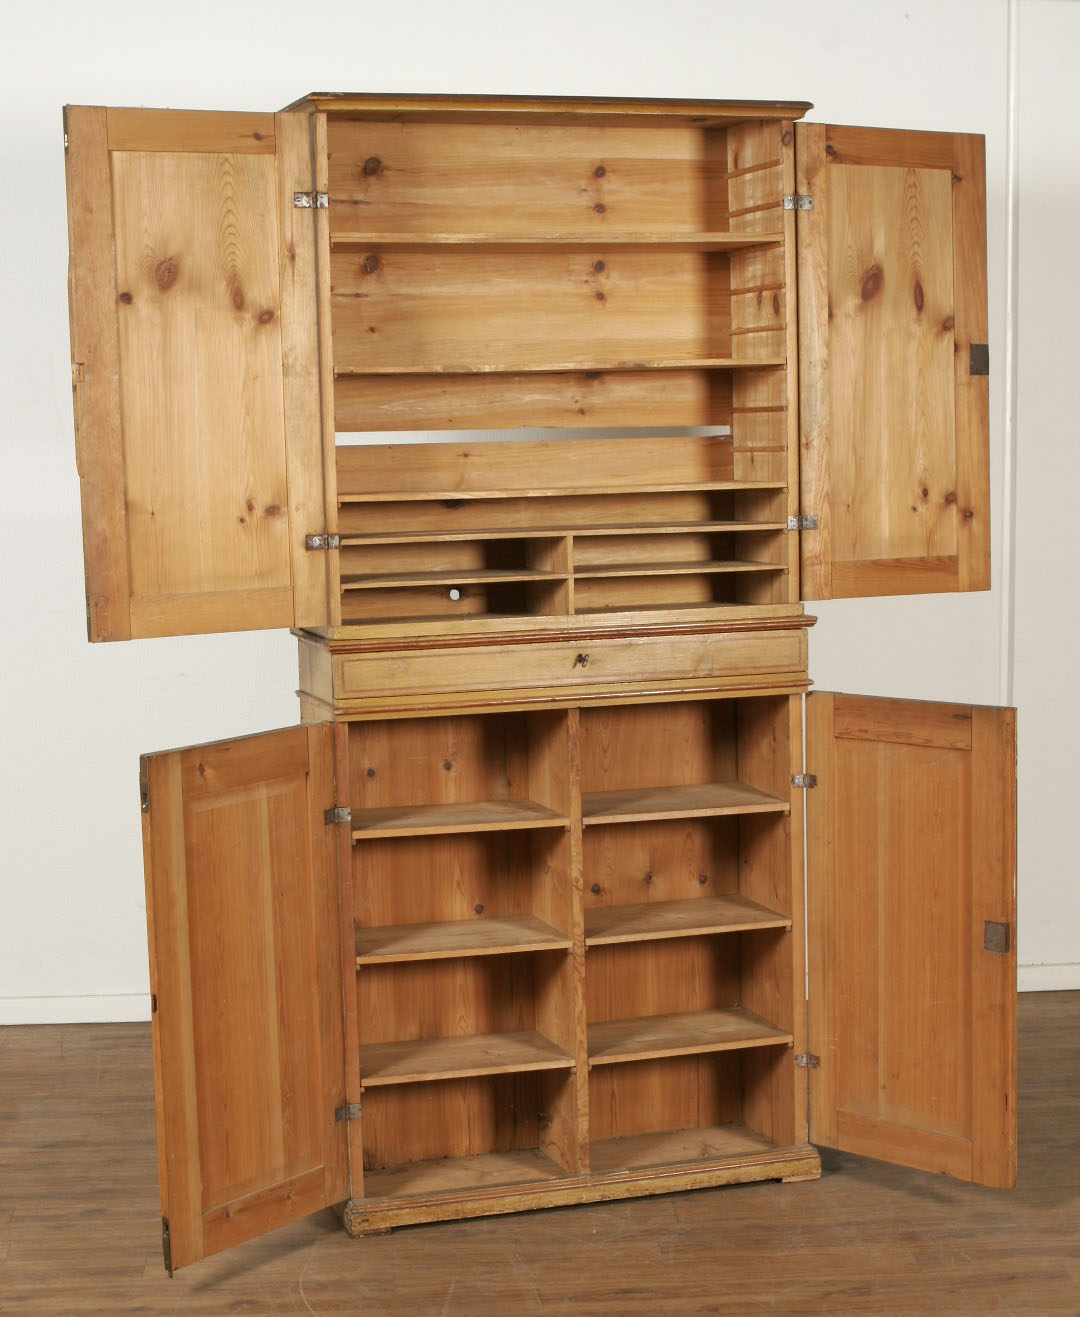 Antique Danish And Swedish Pantry Cupboards